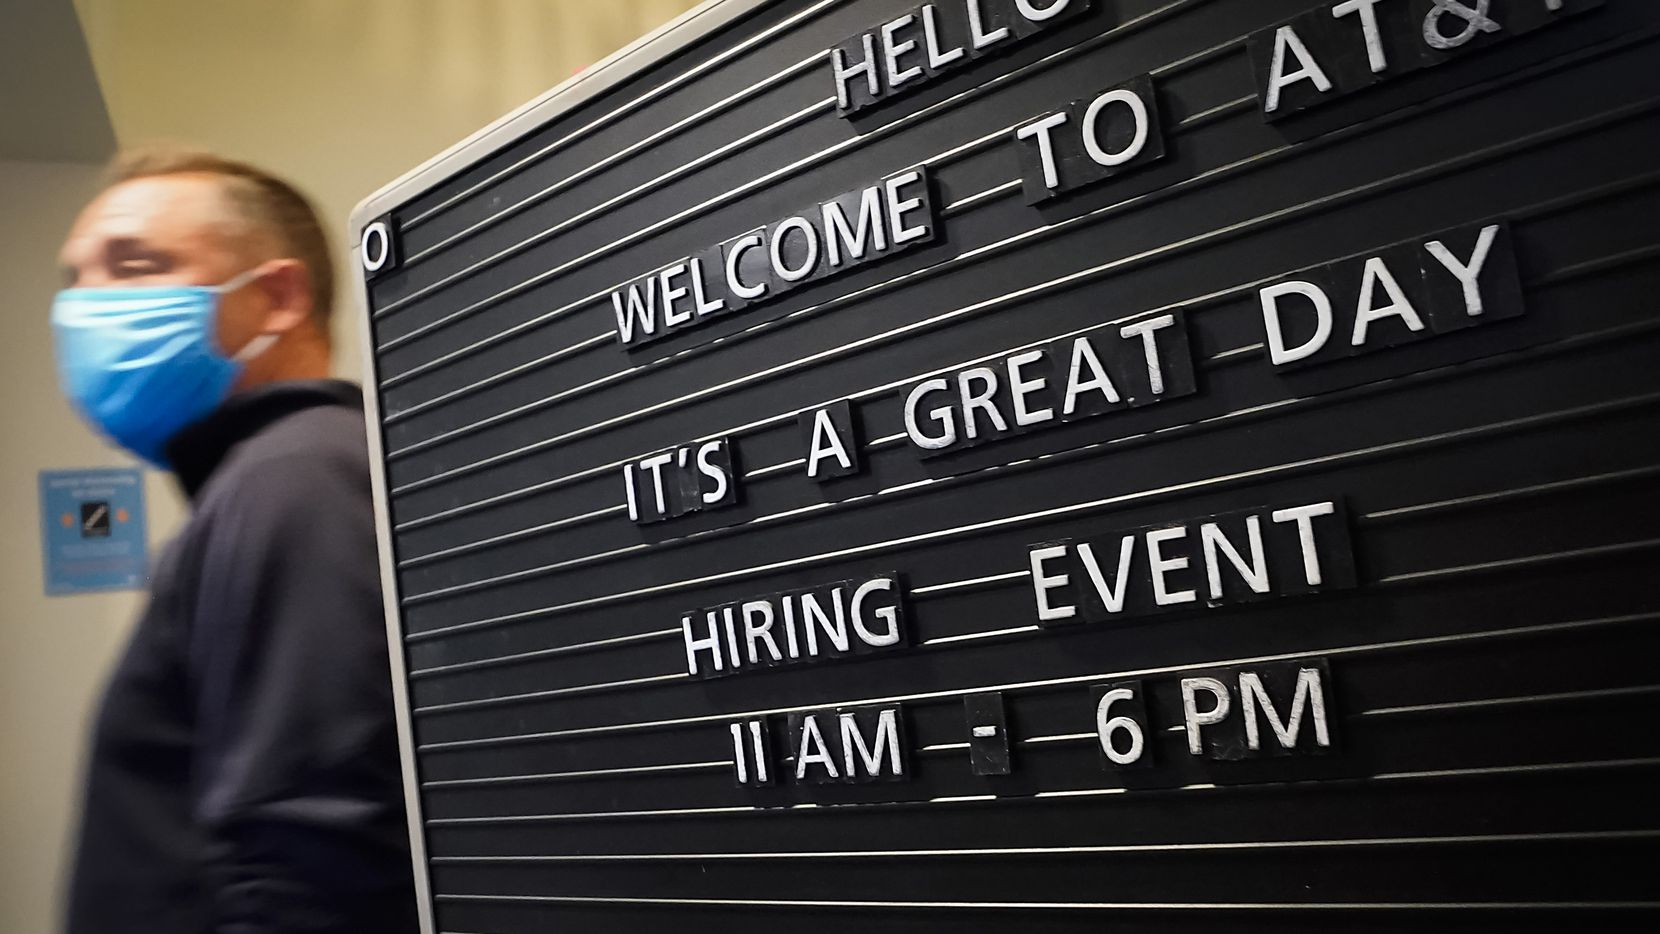 A sign welcomes job candidates to an AT&T hiring event on April 28 in Richardson. The company is hiring for 300 available jobs across the Dallas-Fort Worth area. Available positions include retail, virtual sales and customer acquisition roles.